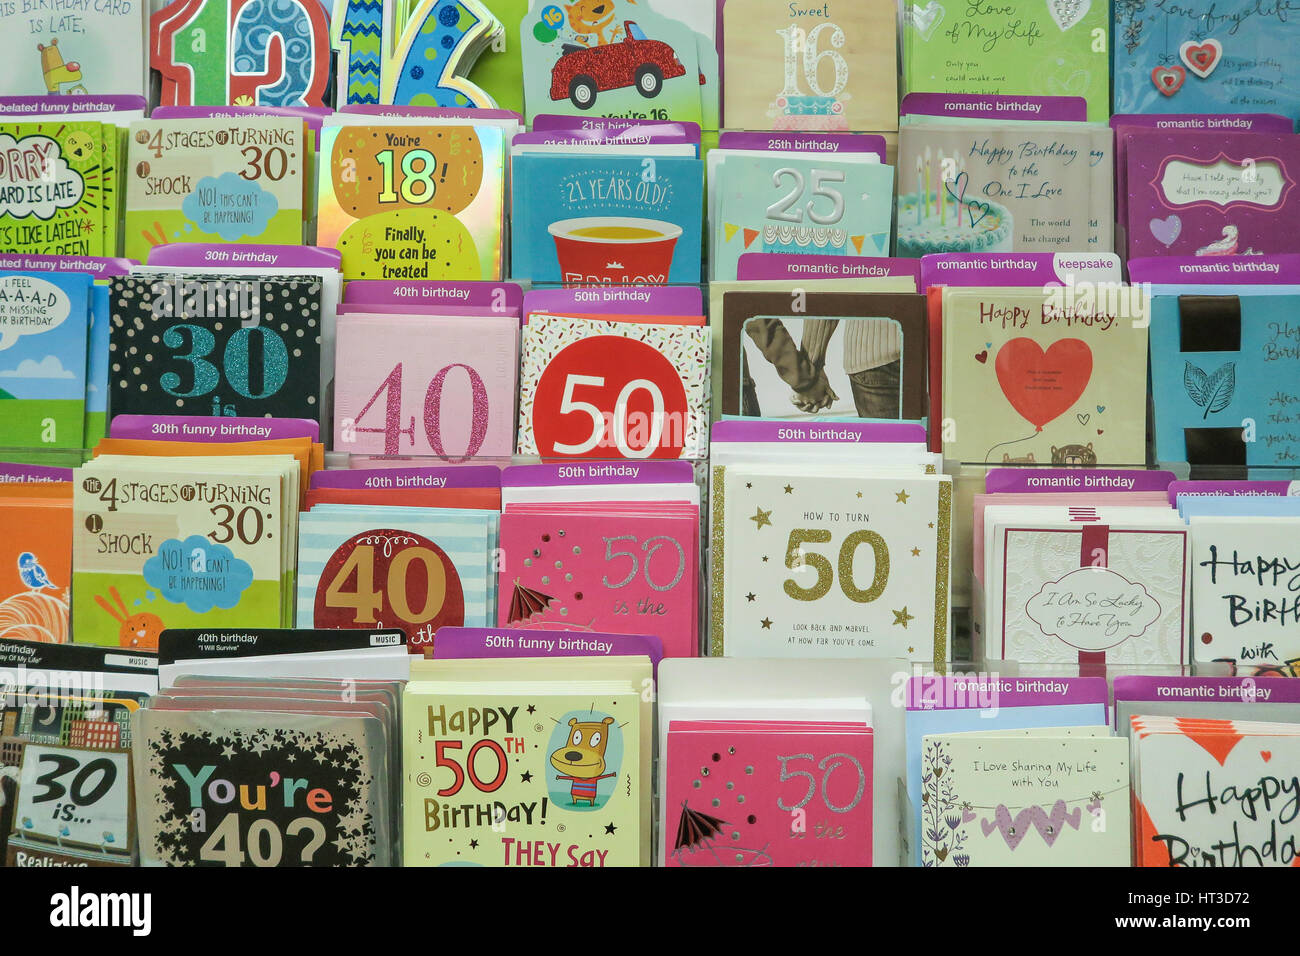 Milestone birthday cards at kmart nyc usa stock photo 135300566 milestone birthday cards at kmart nyc usa kristyandbryce Image collections